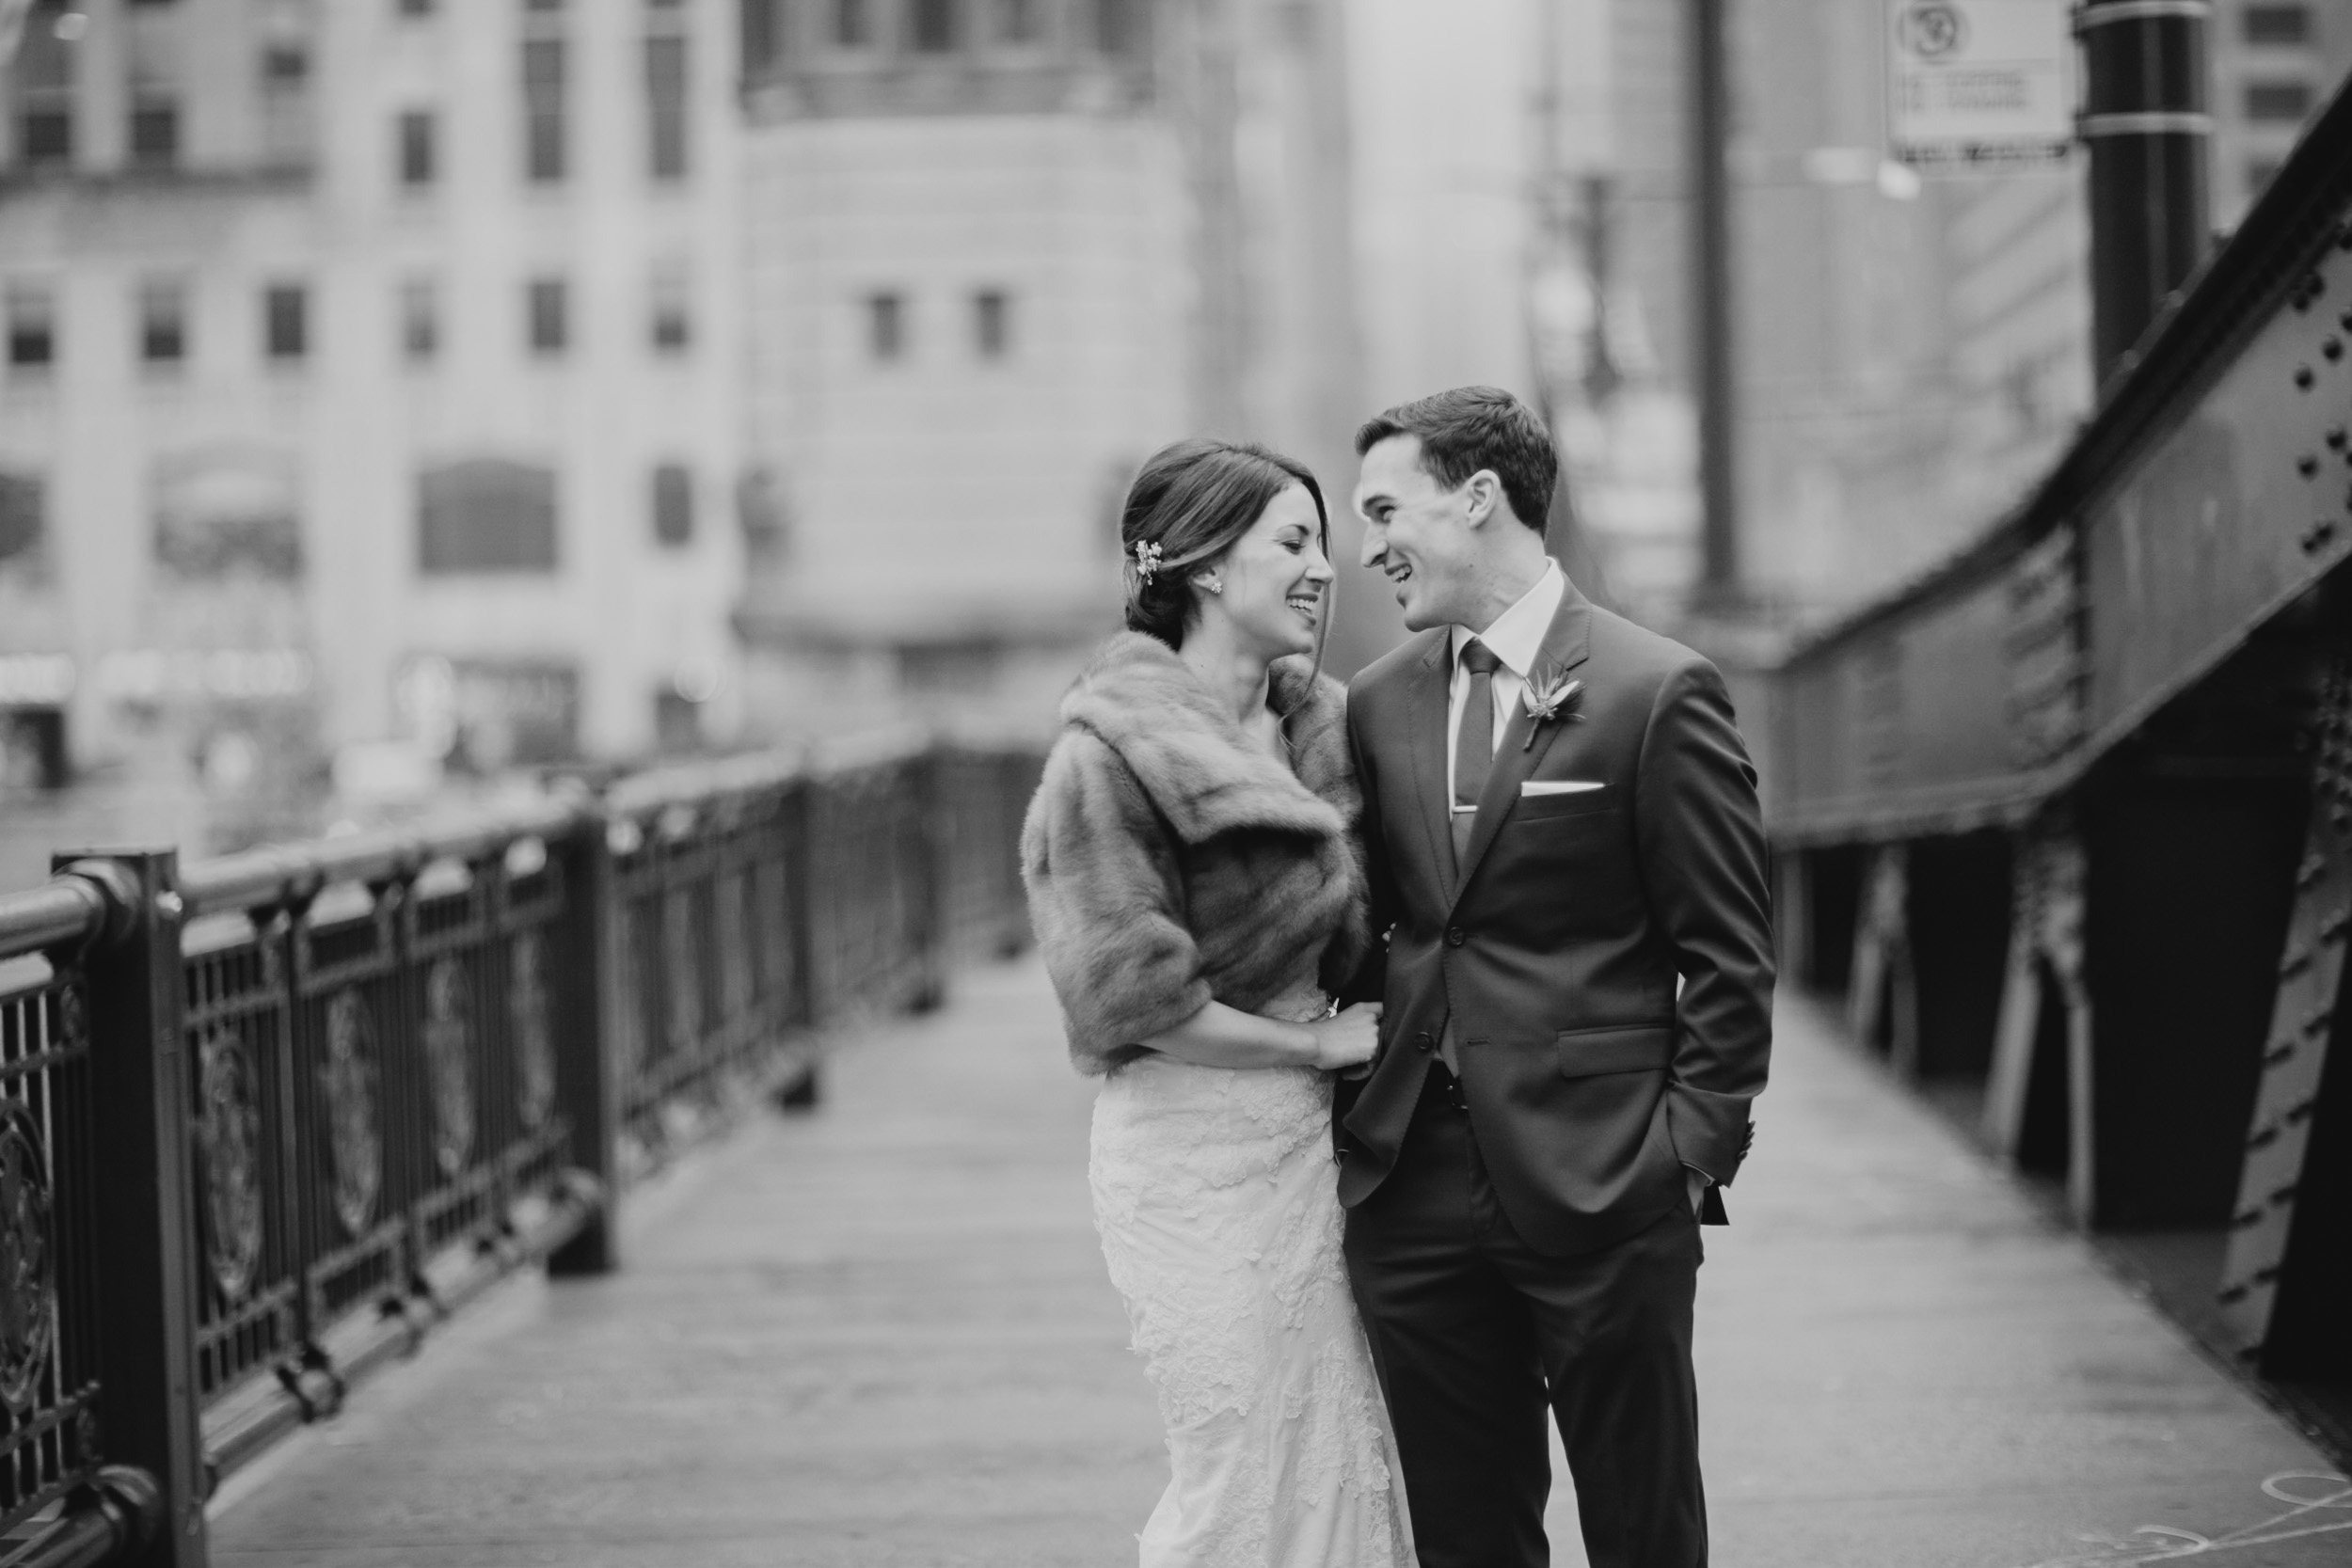 HaroldWashingtonLibraryWedding_Polly C Photography 1704144115.jpg